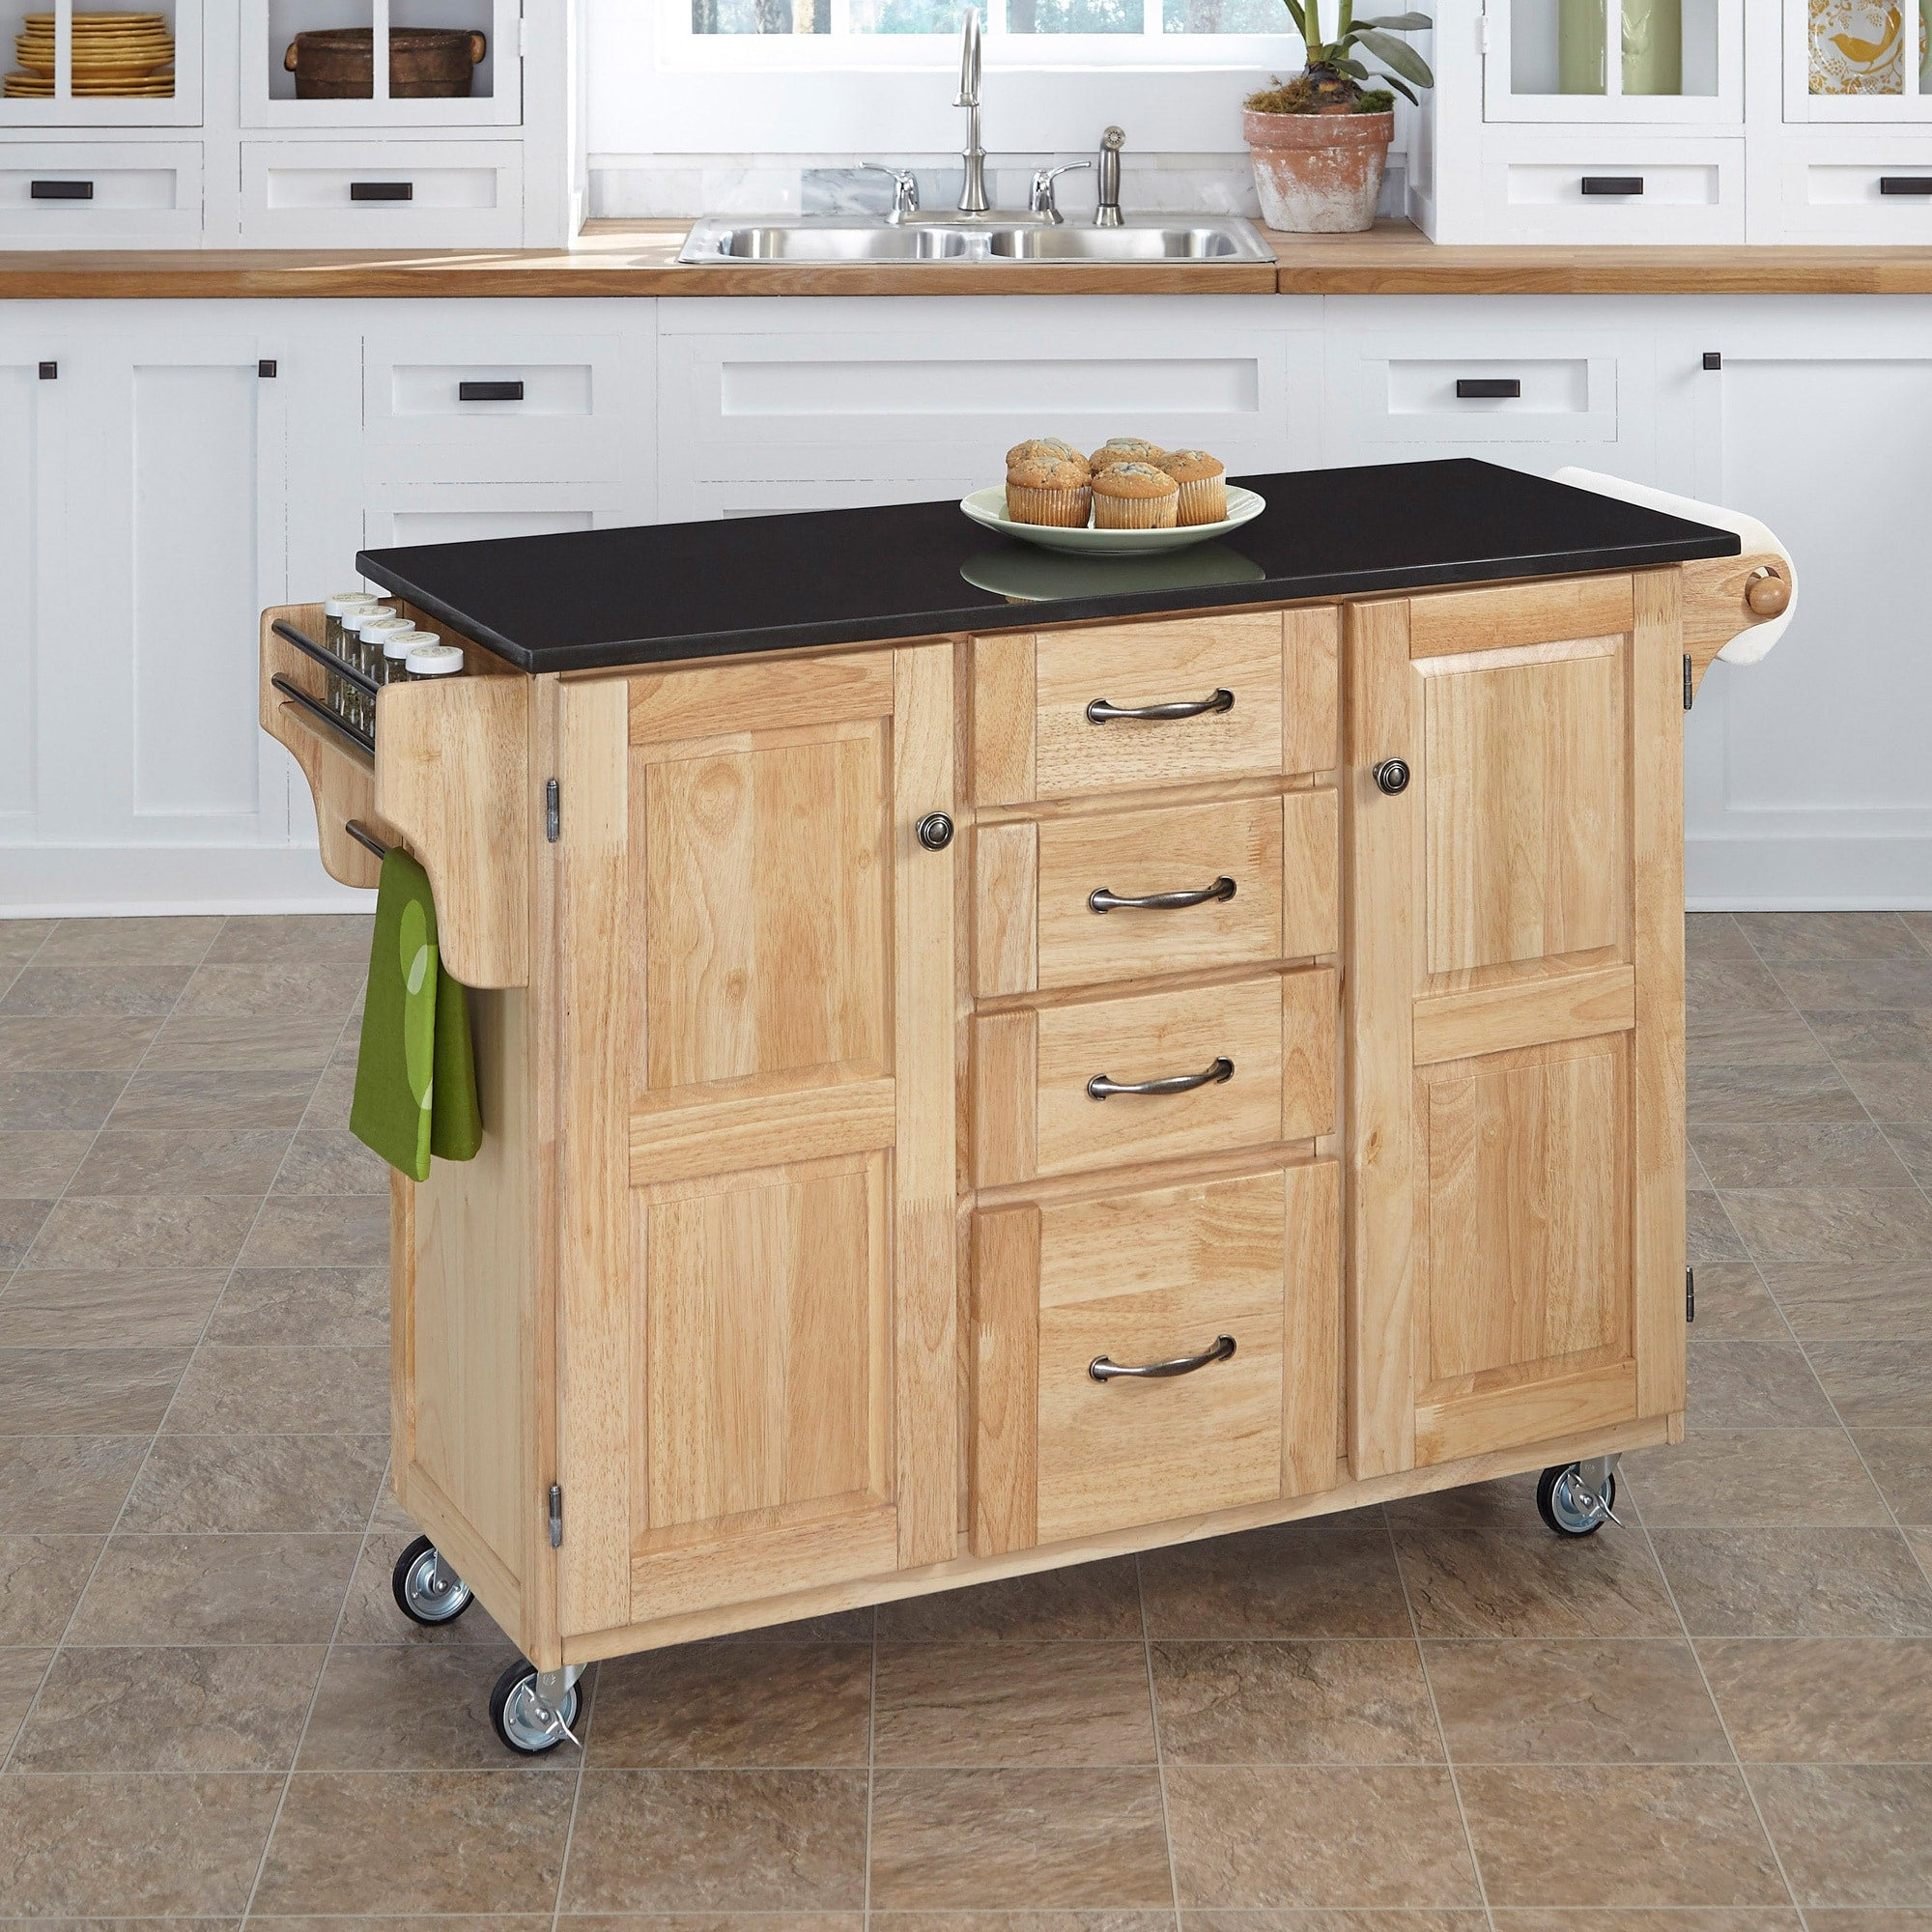 Natural Finish Black Granite Top Kitchen Cart